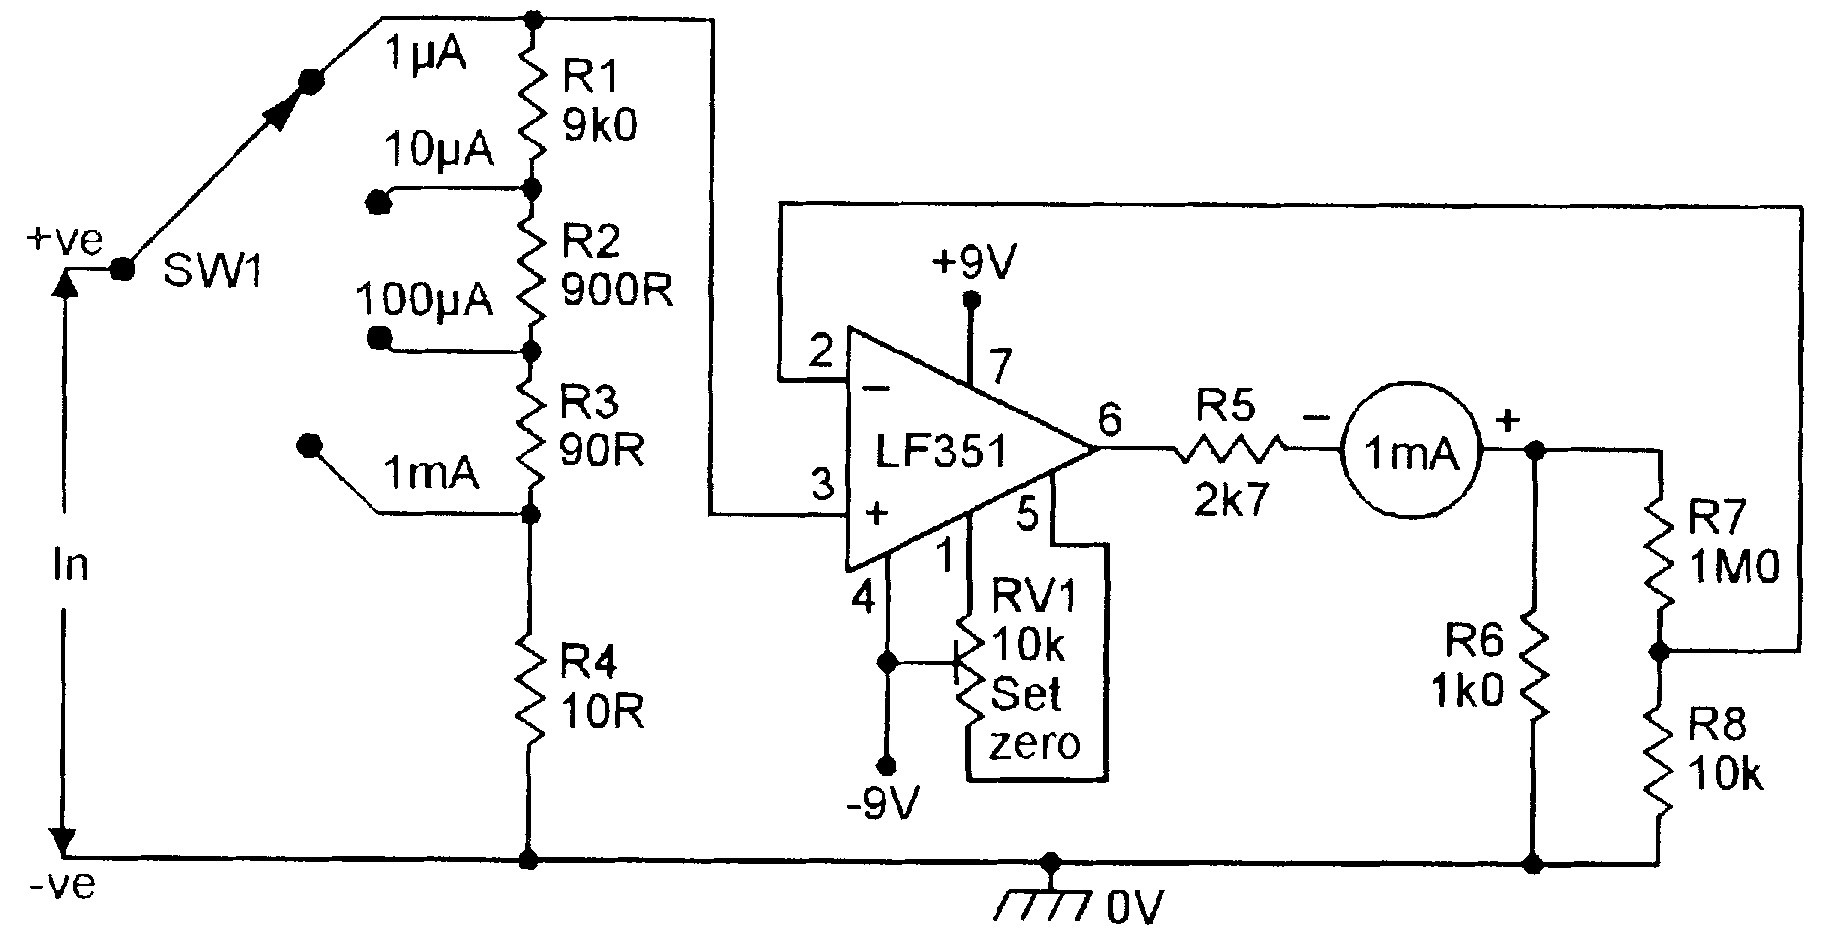 [WRG-9424] Volt Meter Wiring Diagram For Dc